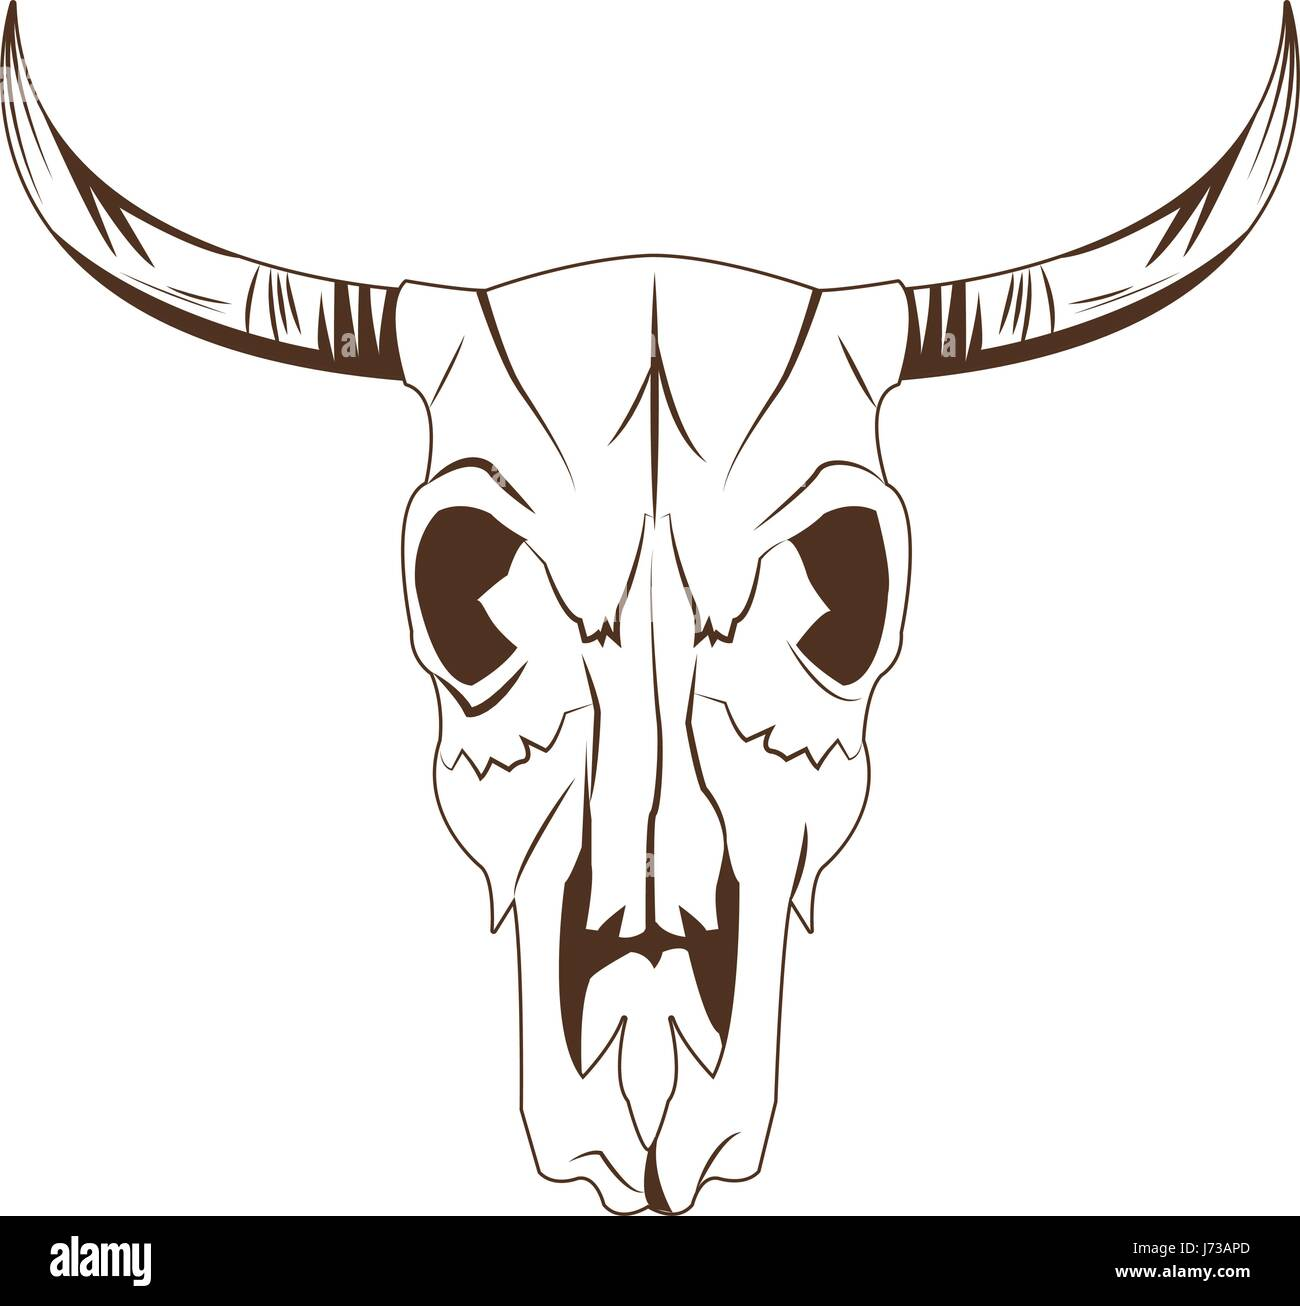 deer skull in tribal style. animal skull with ethnic ornament. wild and free design. - Stock Image